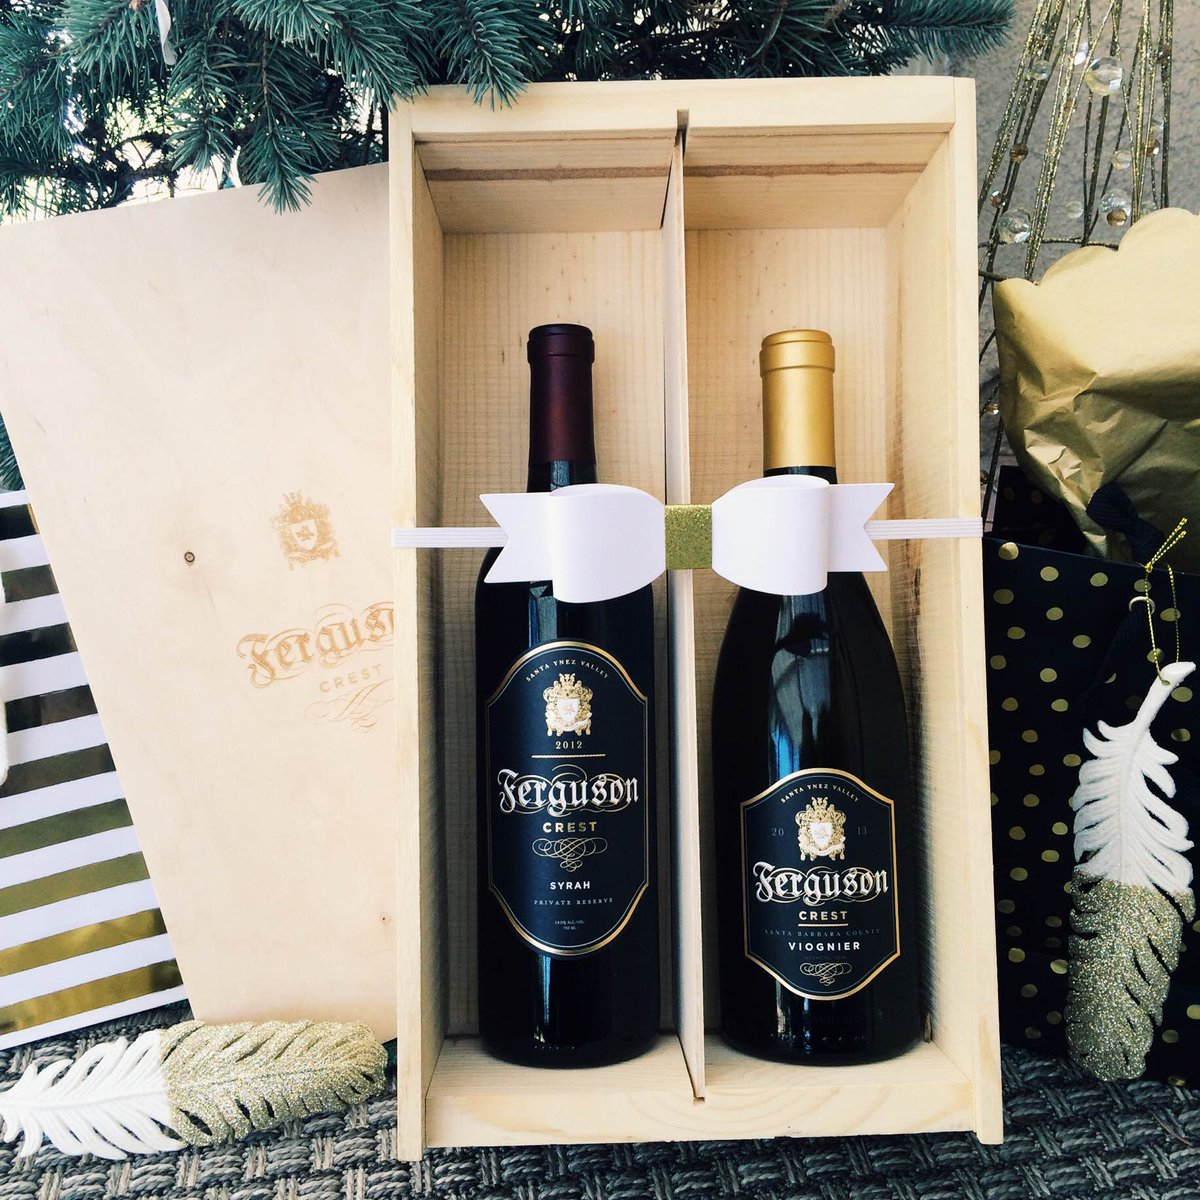 RT @FergusonCrest: Some1 dreaming of a #wine #Christmas? Give the #perfectgift!#christmaswine #winegift #fergie https://t.co/xcE0X8phhT htt…